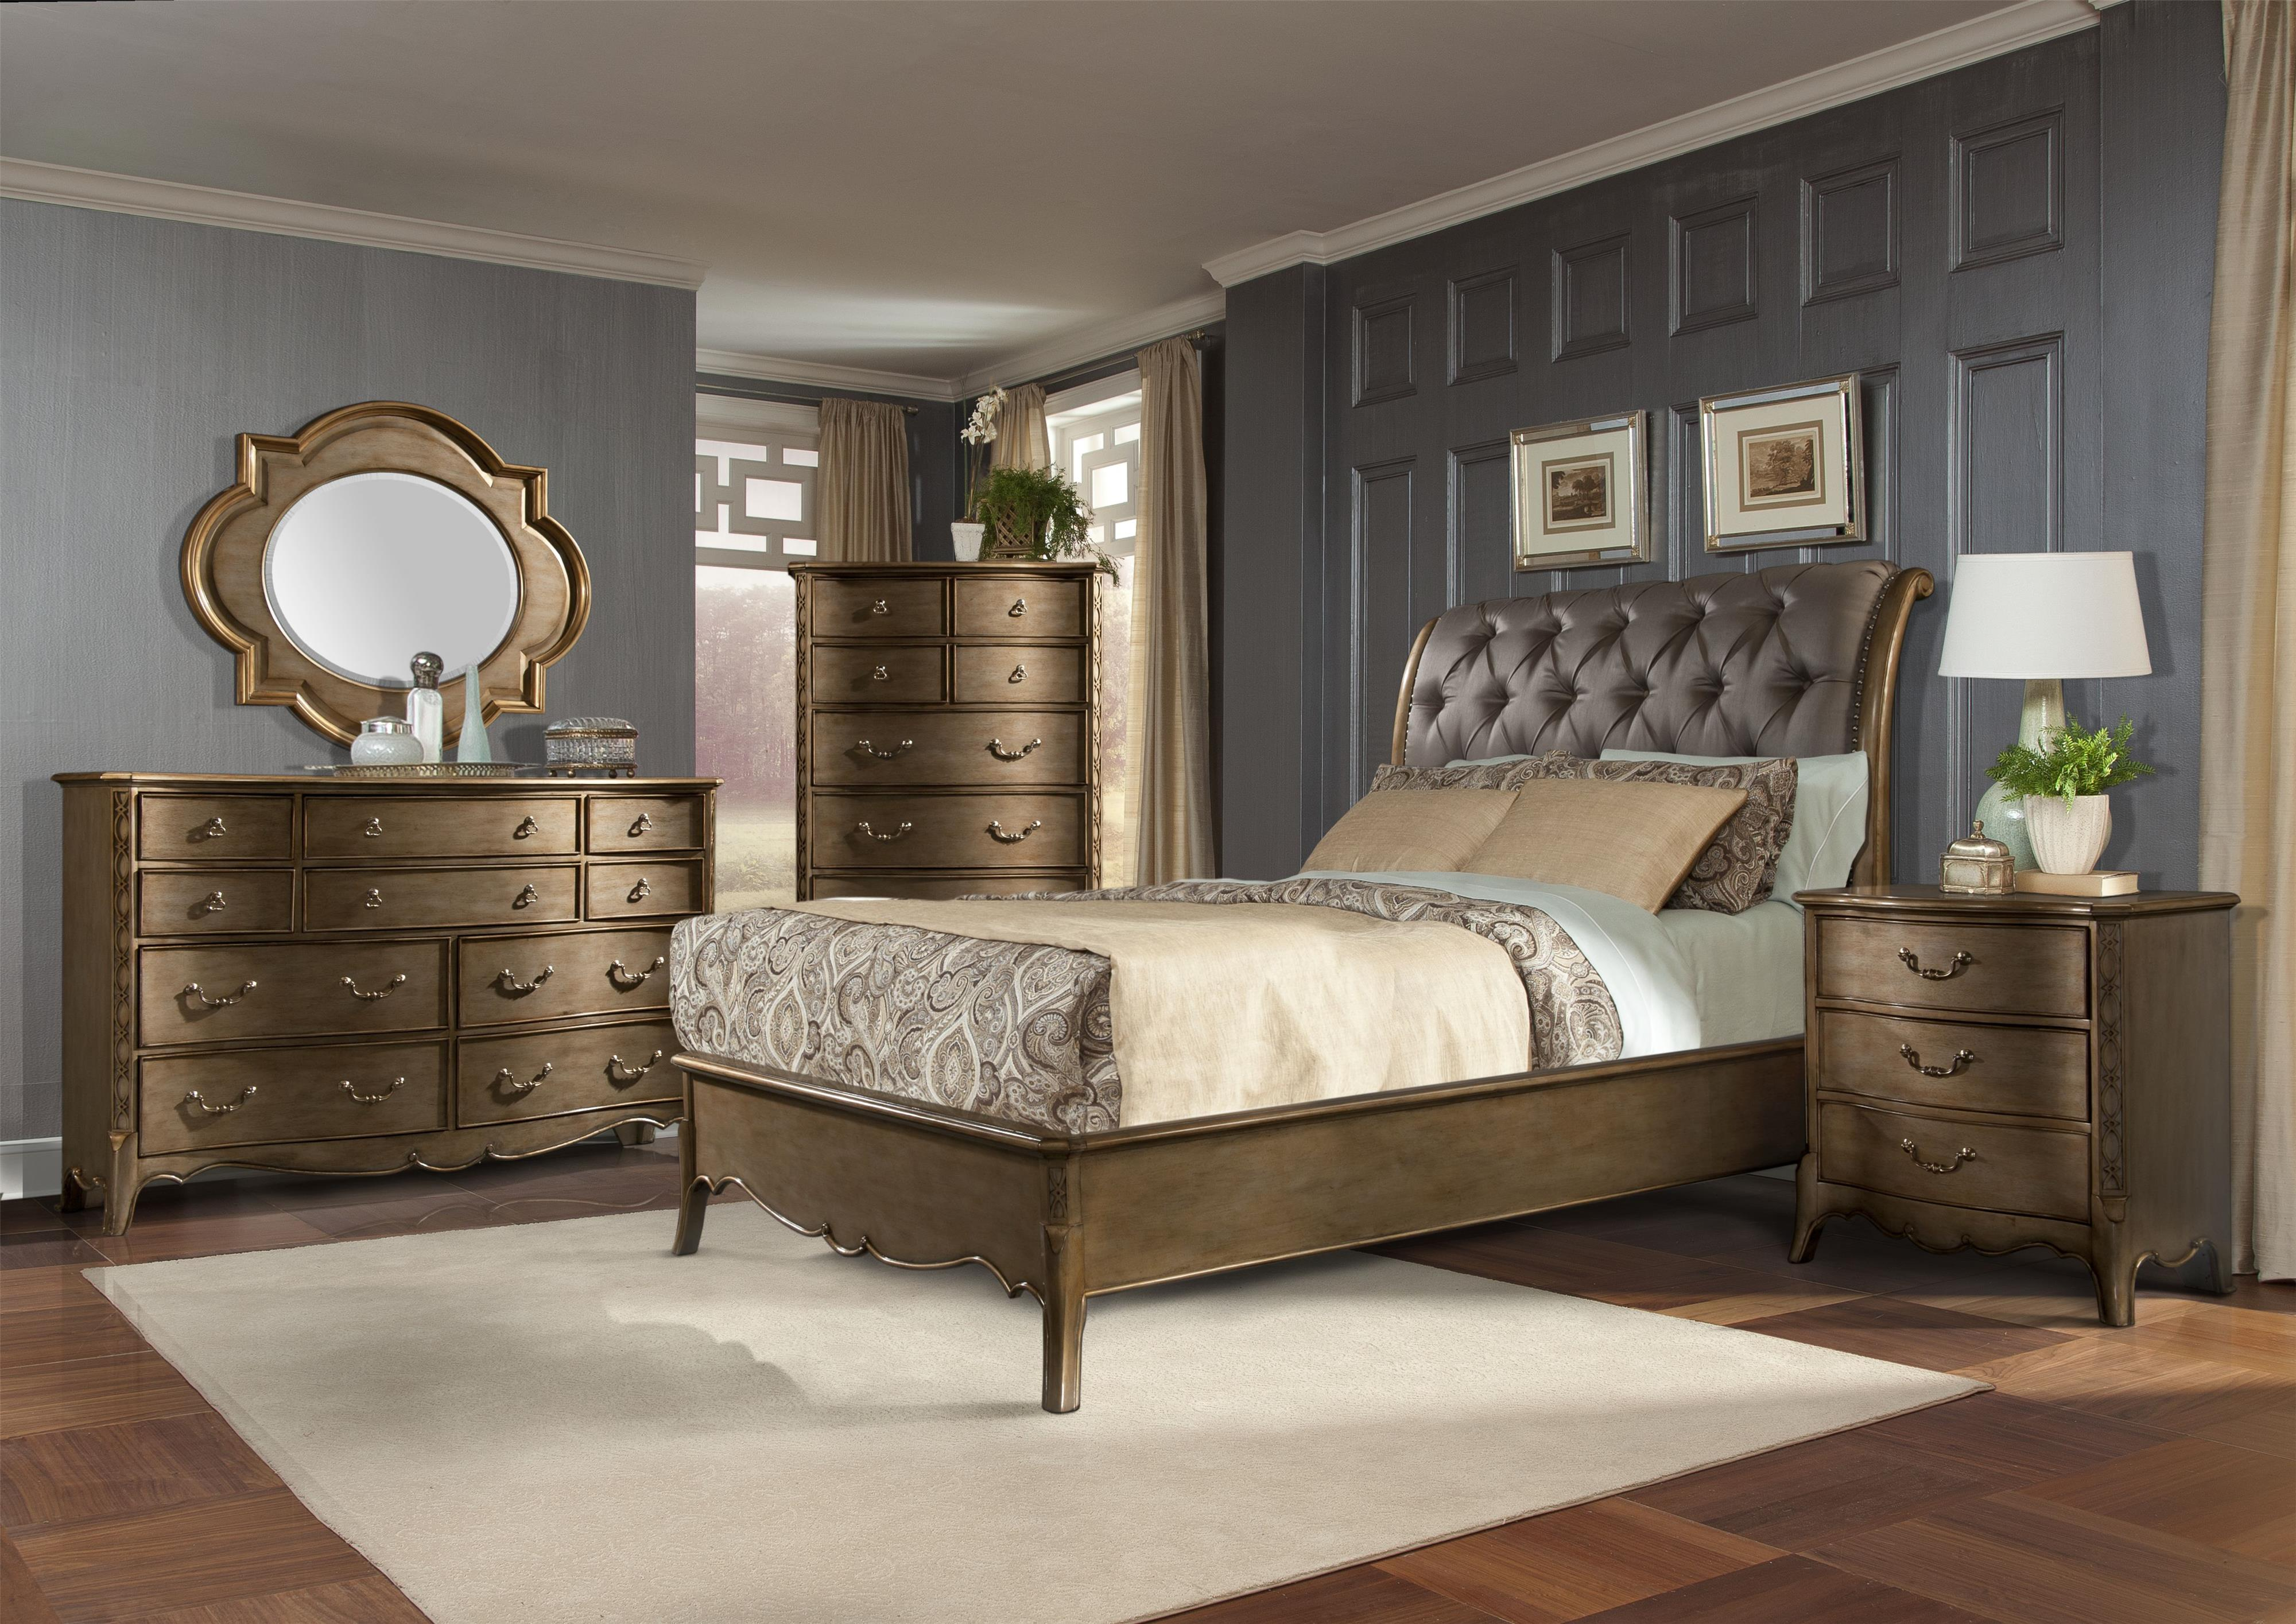 Homelegance Chambord Queen Bedroom Group - Item Number: 1828 Q Bedroom Group 2